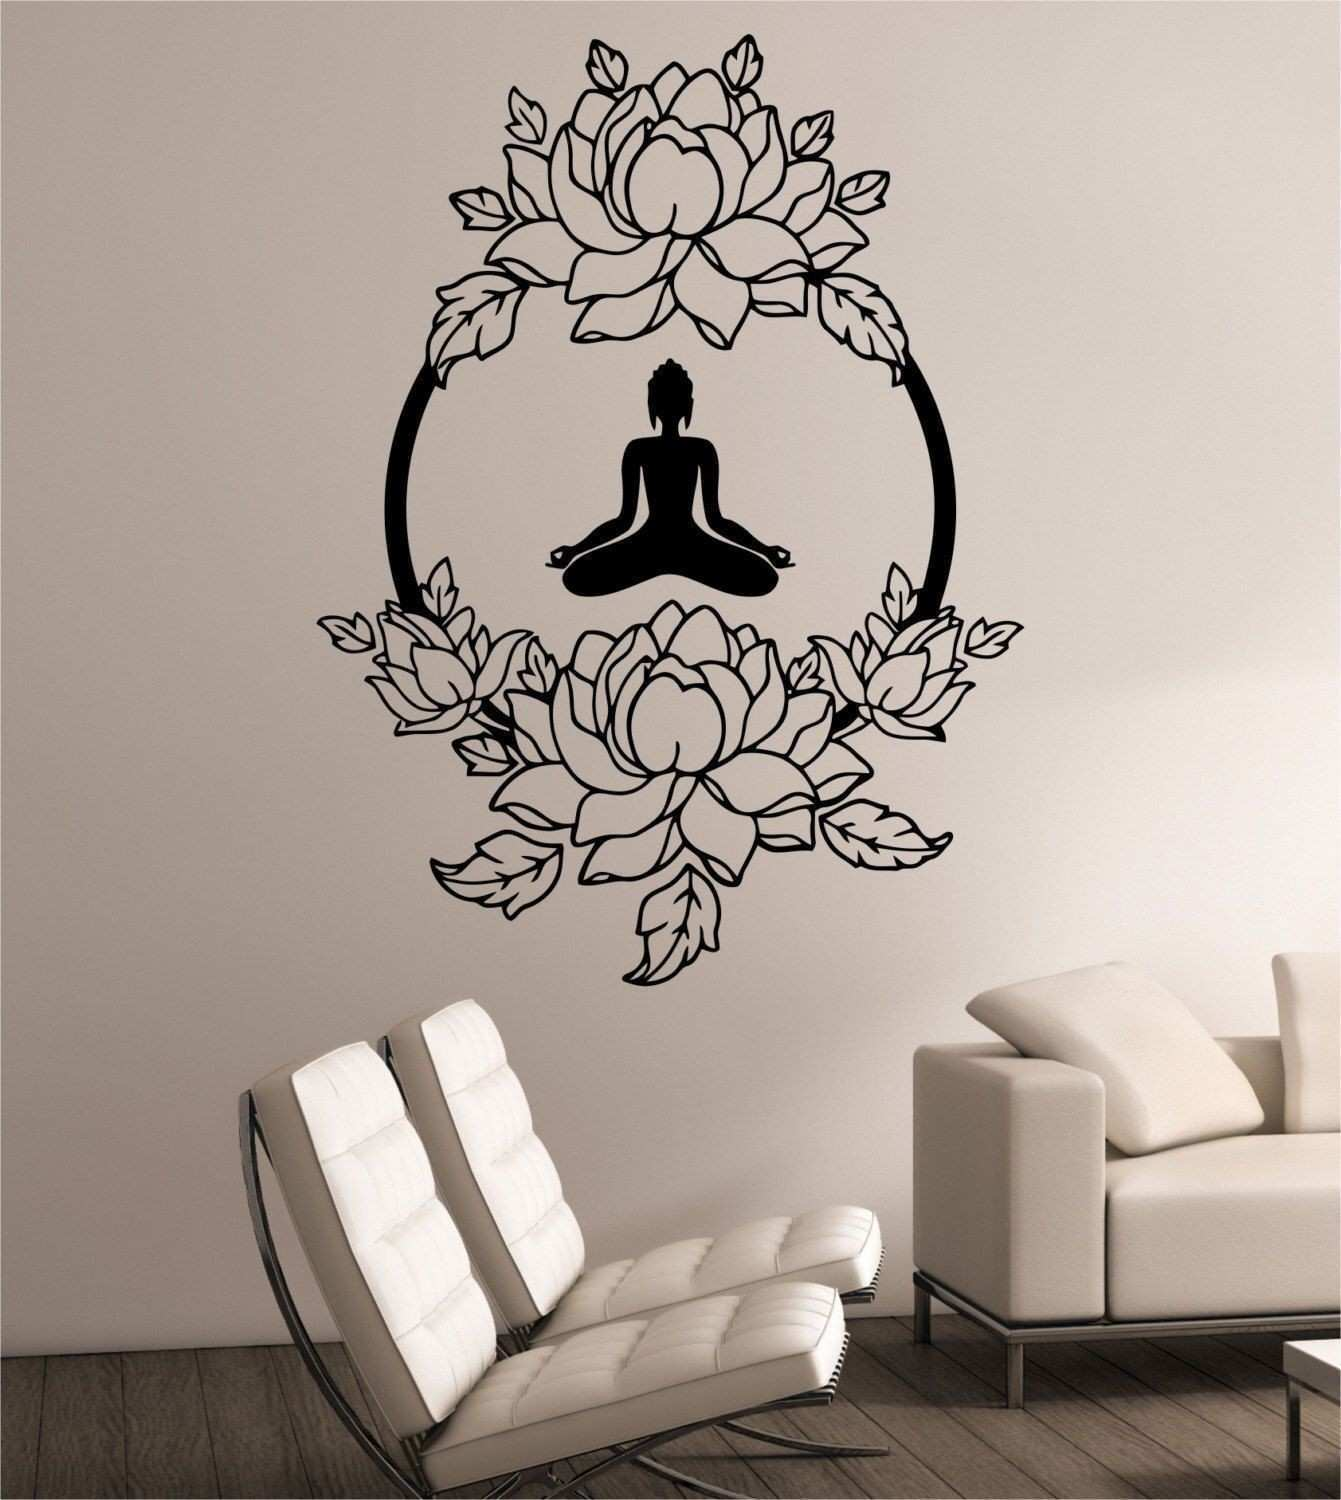 49 New Music Wall Decals